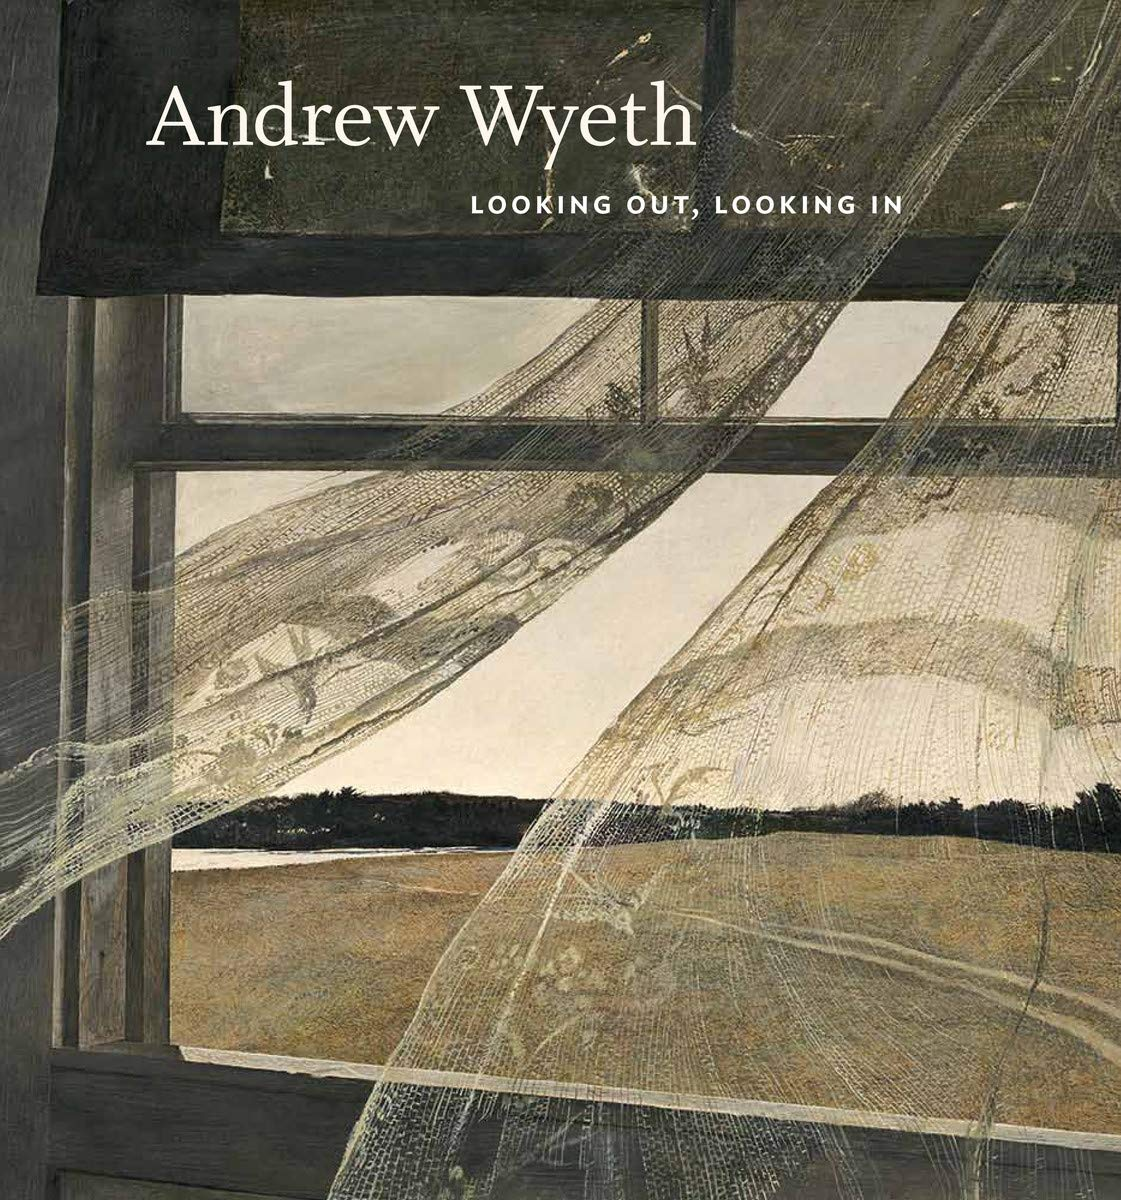 Books - Andrew Wyeth Looking Out, Looking In (4508845441111)